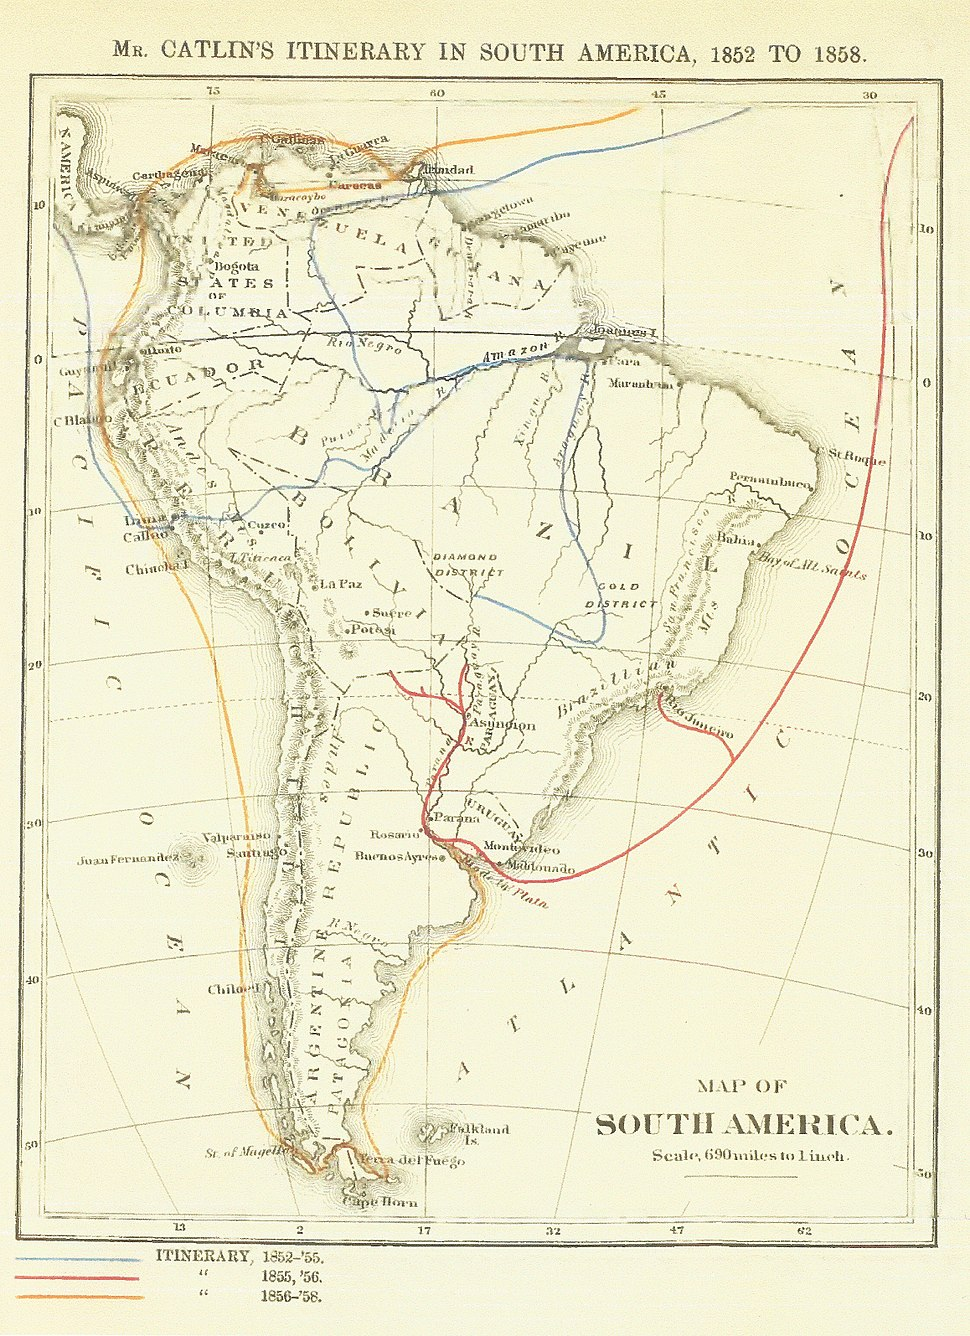 George Catlin's travels in South America, 1852-1858